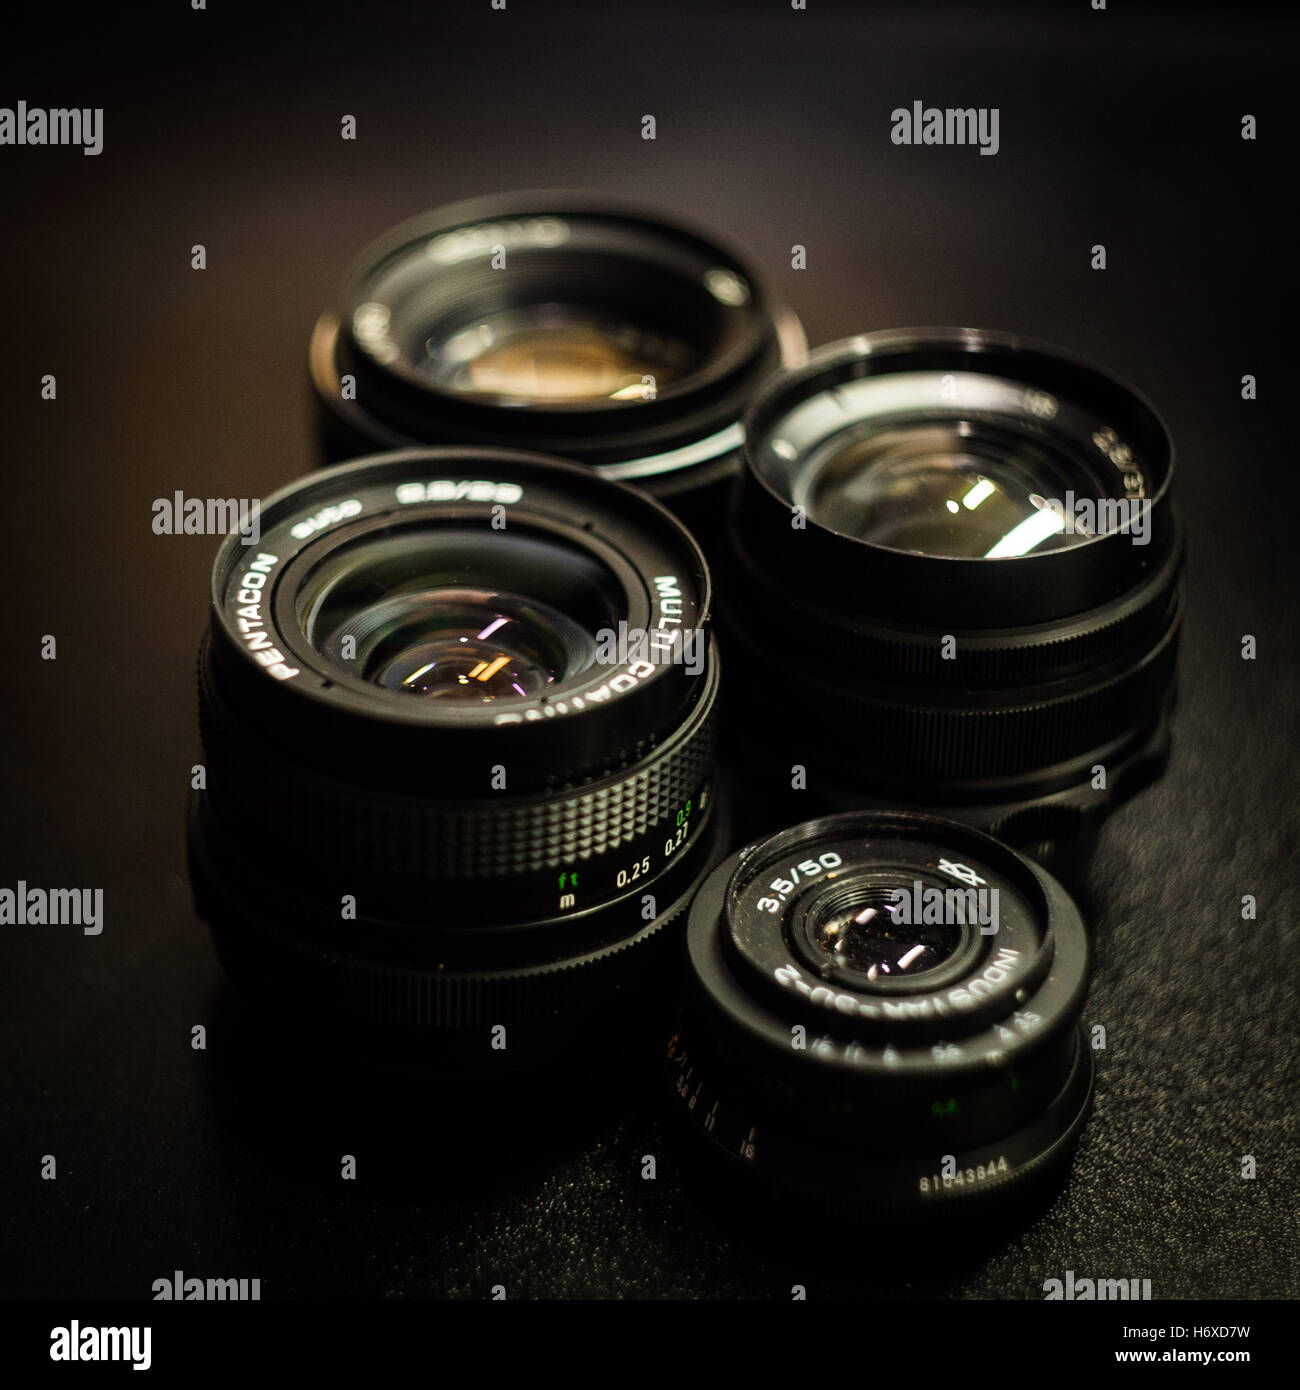 Retro photo camera lens on dark background - Stock Image